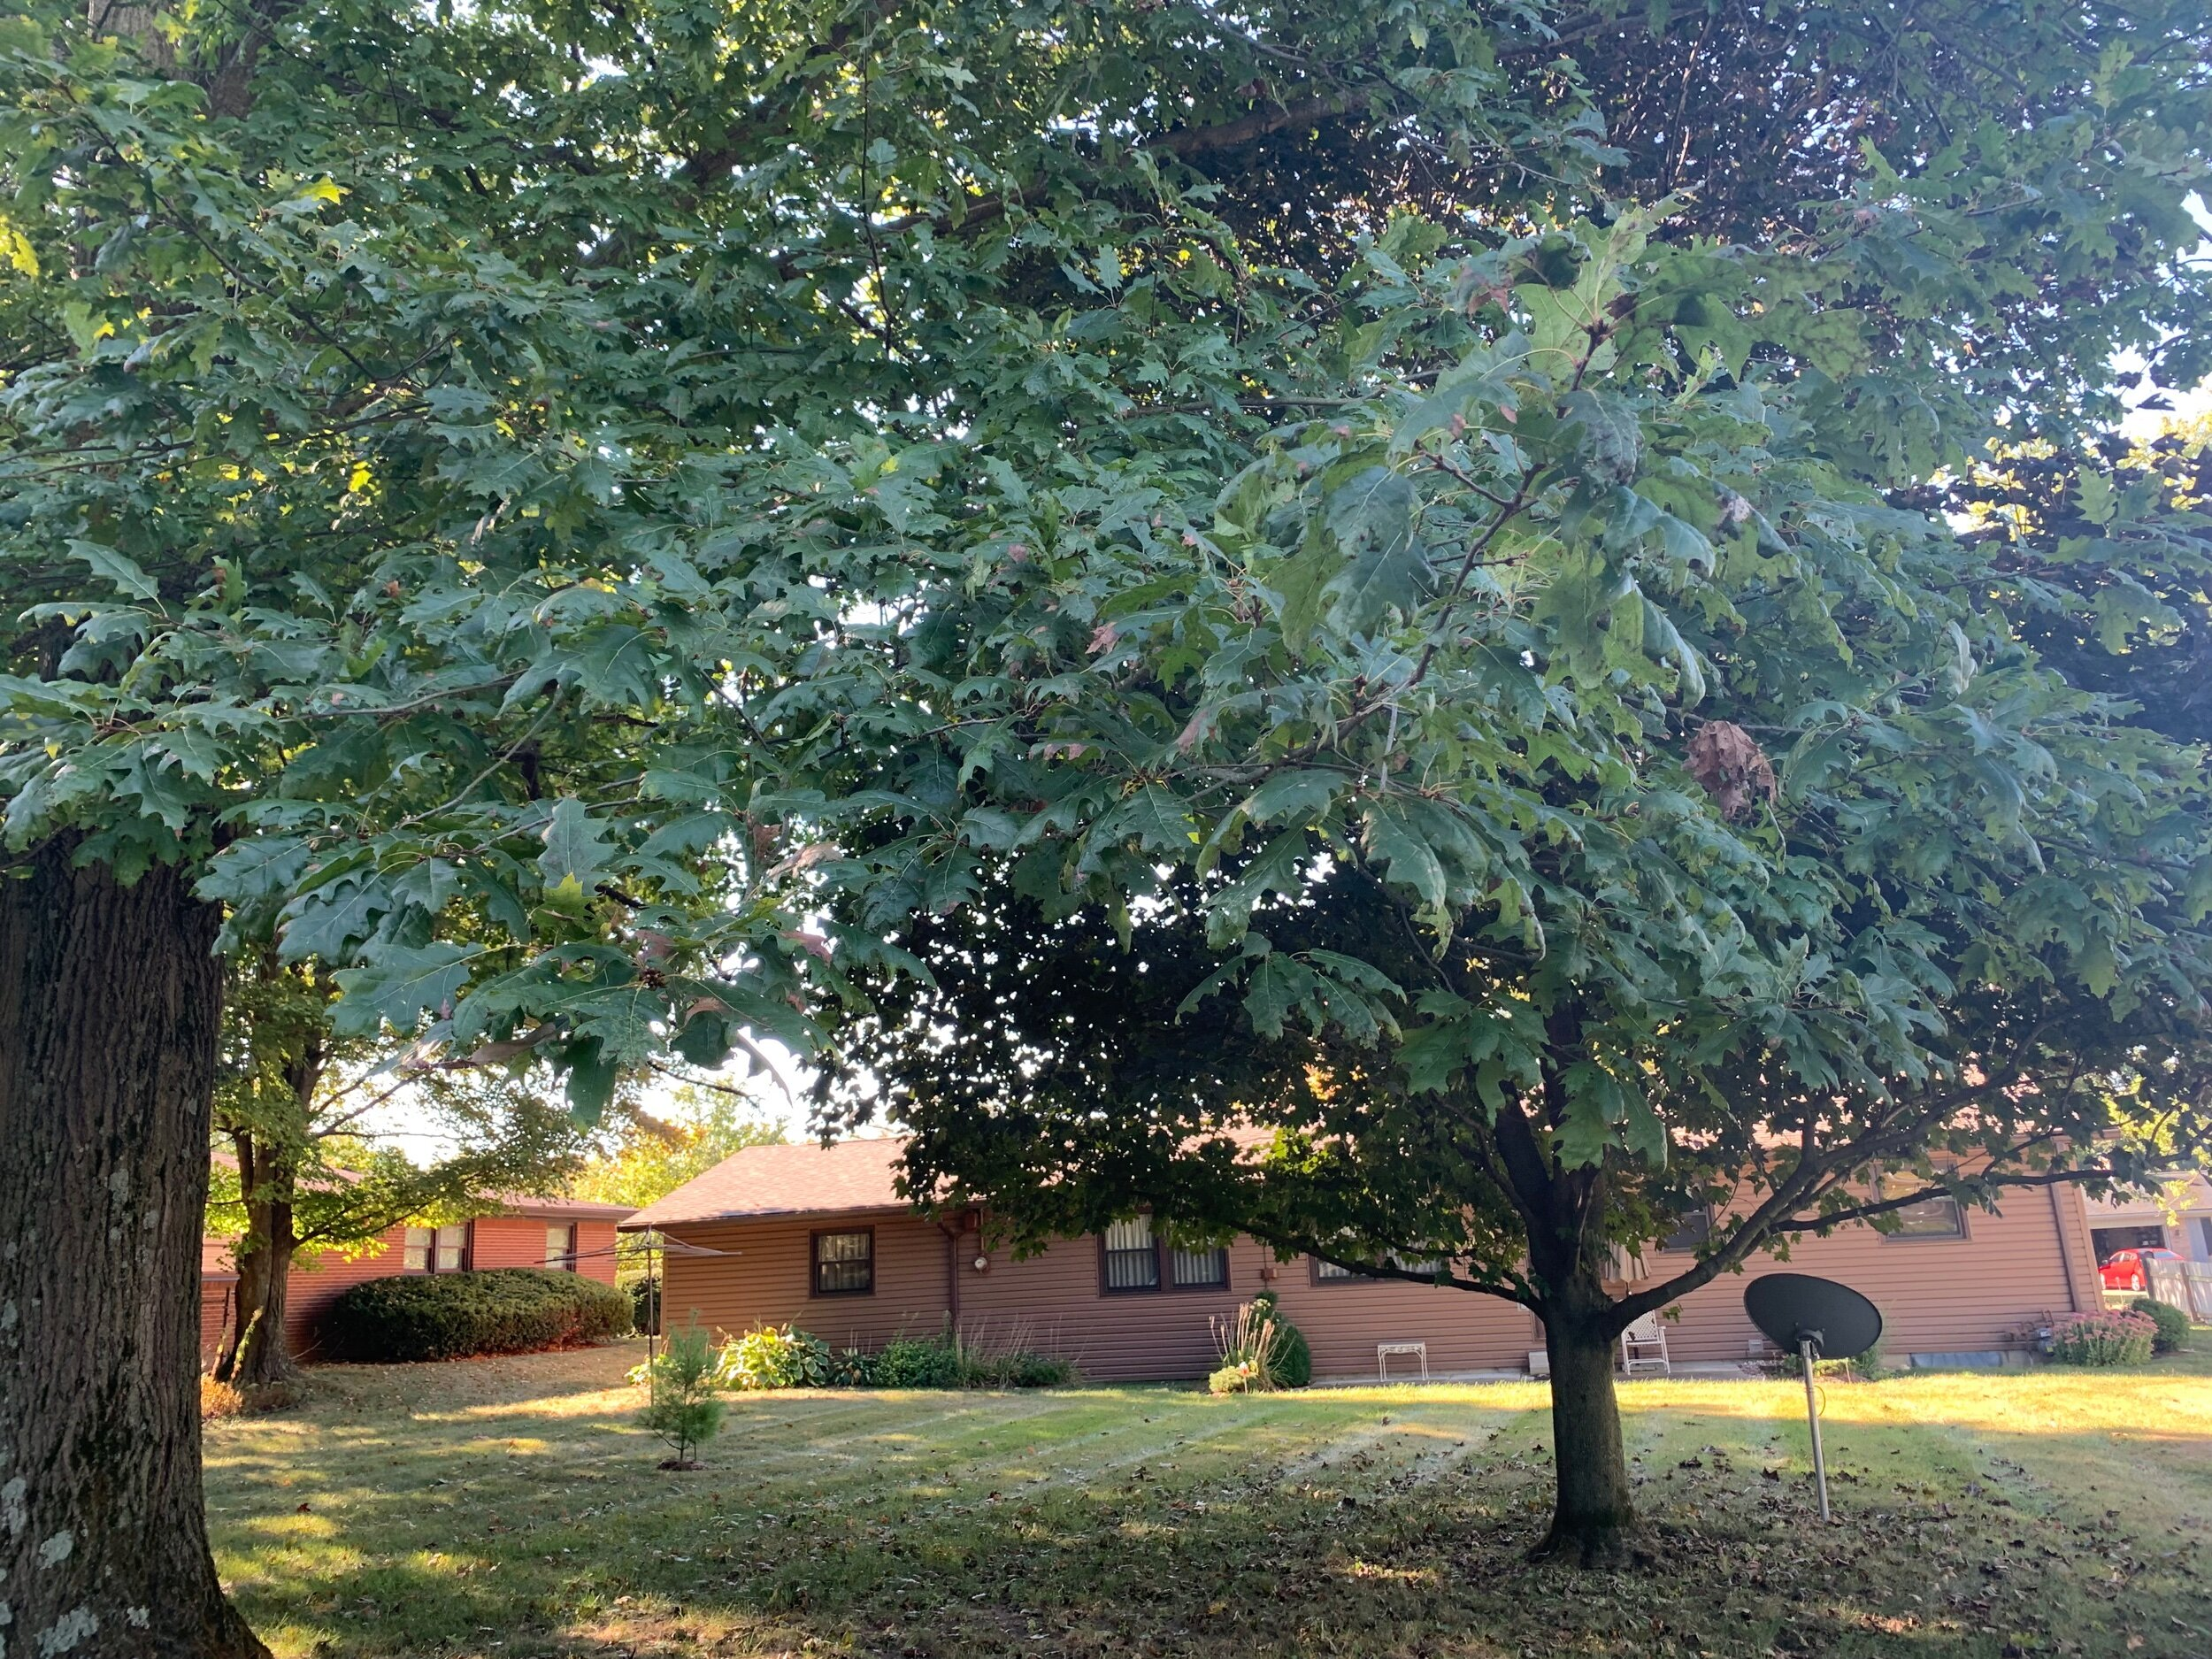 Real estate auction. OCtober 26, 2019 at 1:00